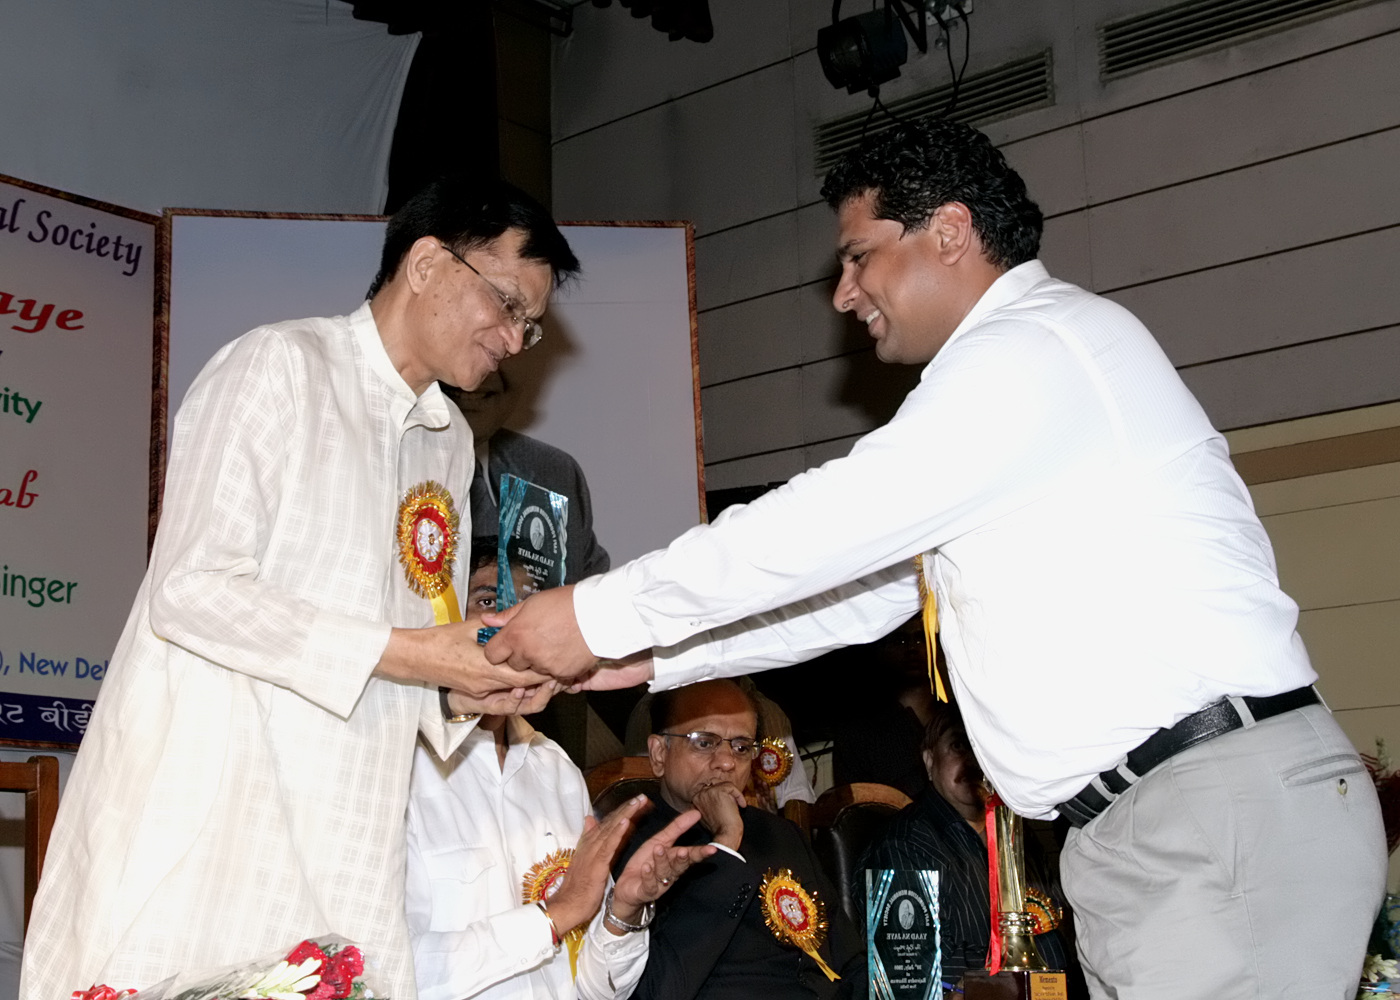 4(300708)-Dr. Mukesh Garg being greeted by Shri Ashish Kapoor, Vice President, RFMS.